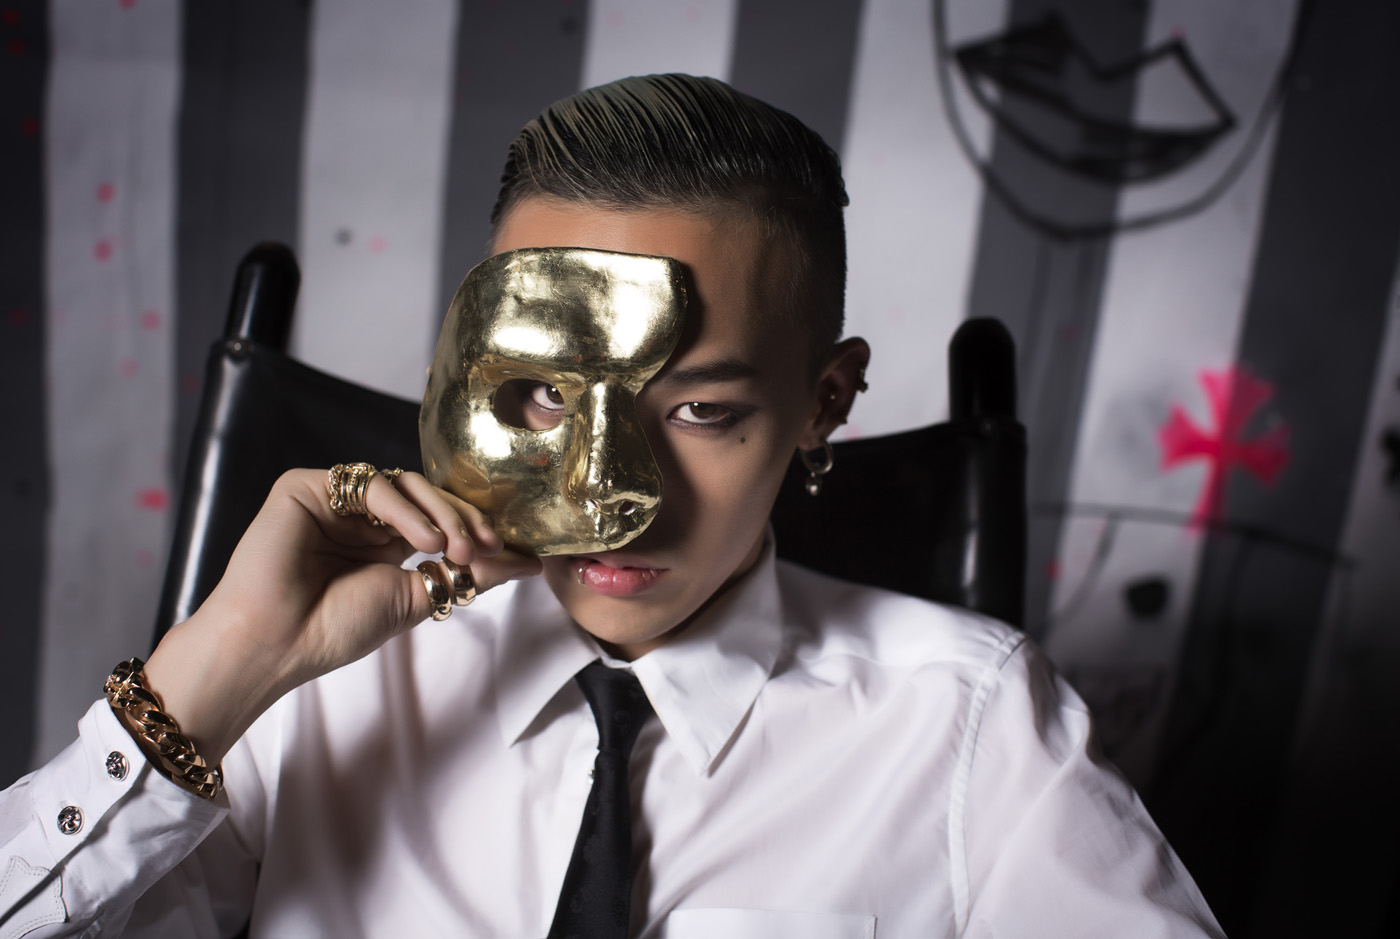 G-Dragon Gold Mask Hollywood, CA 2012